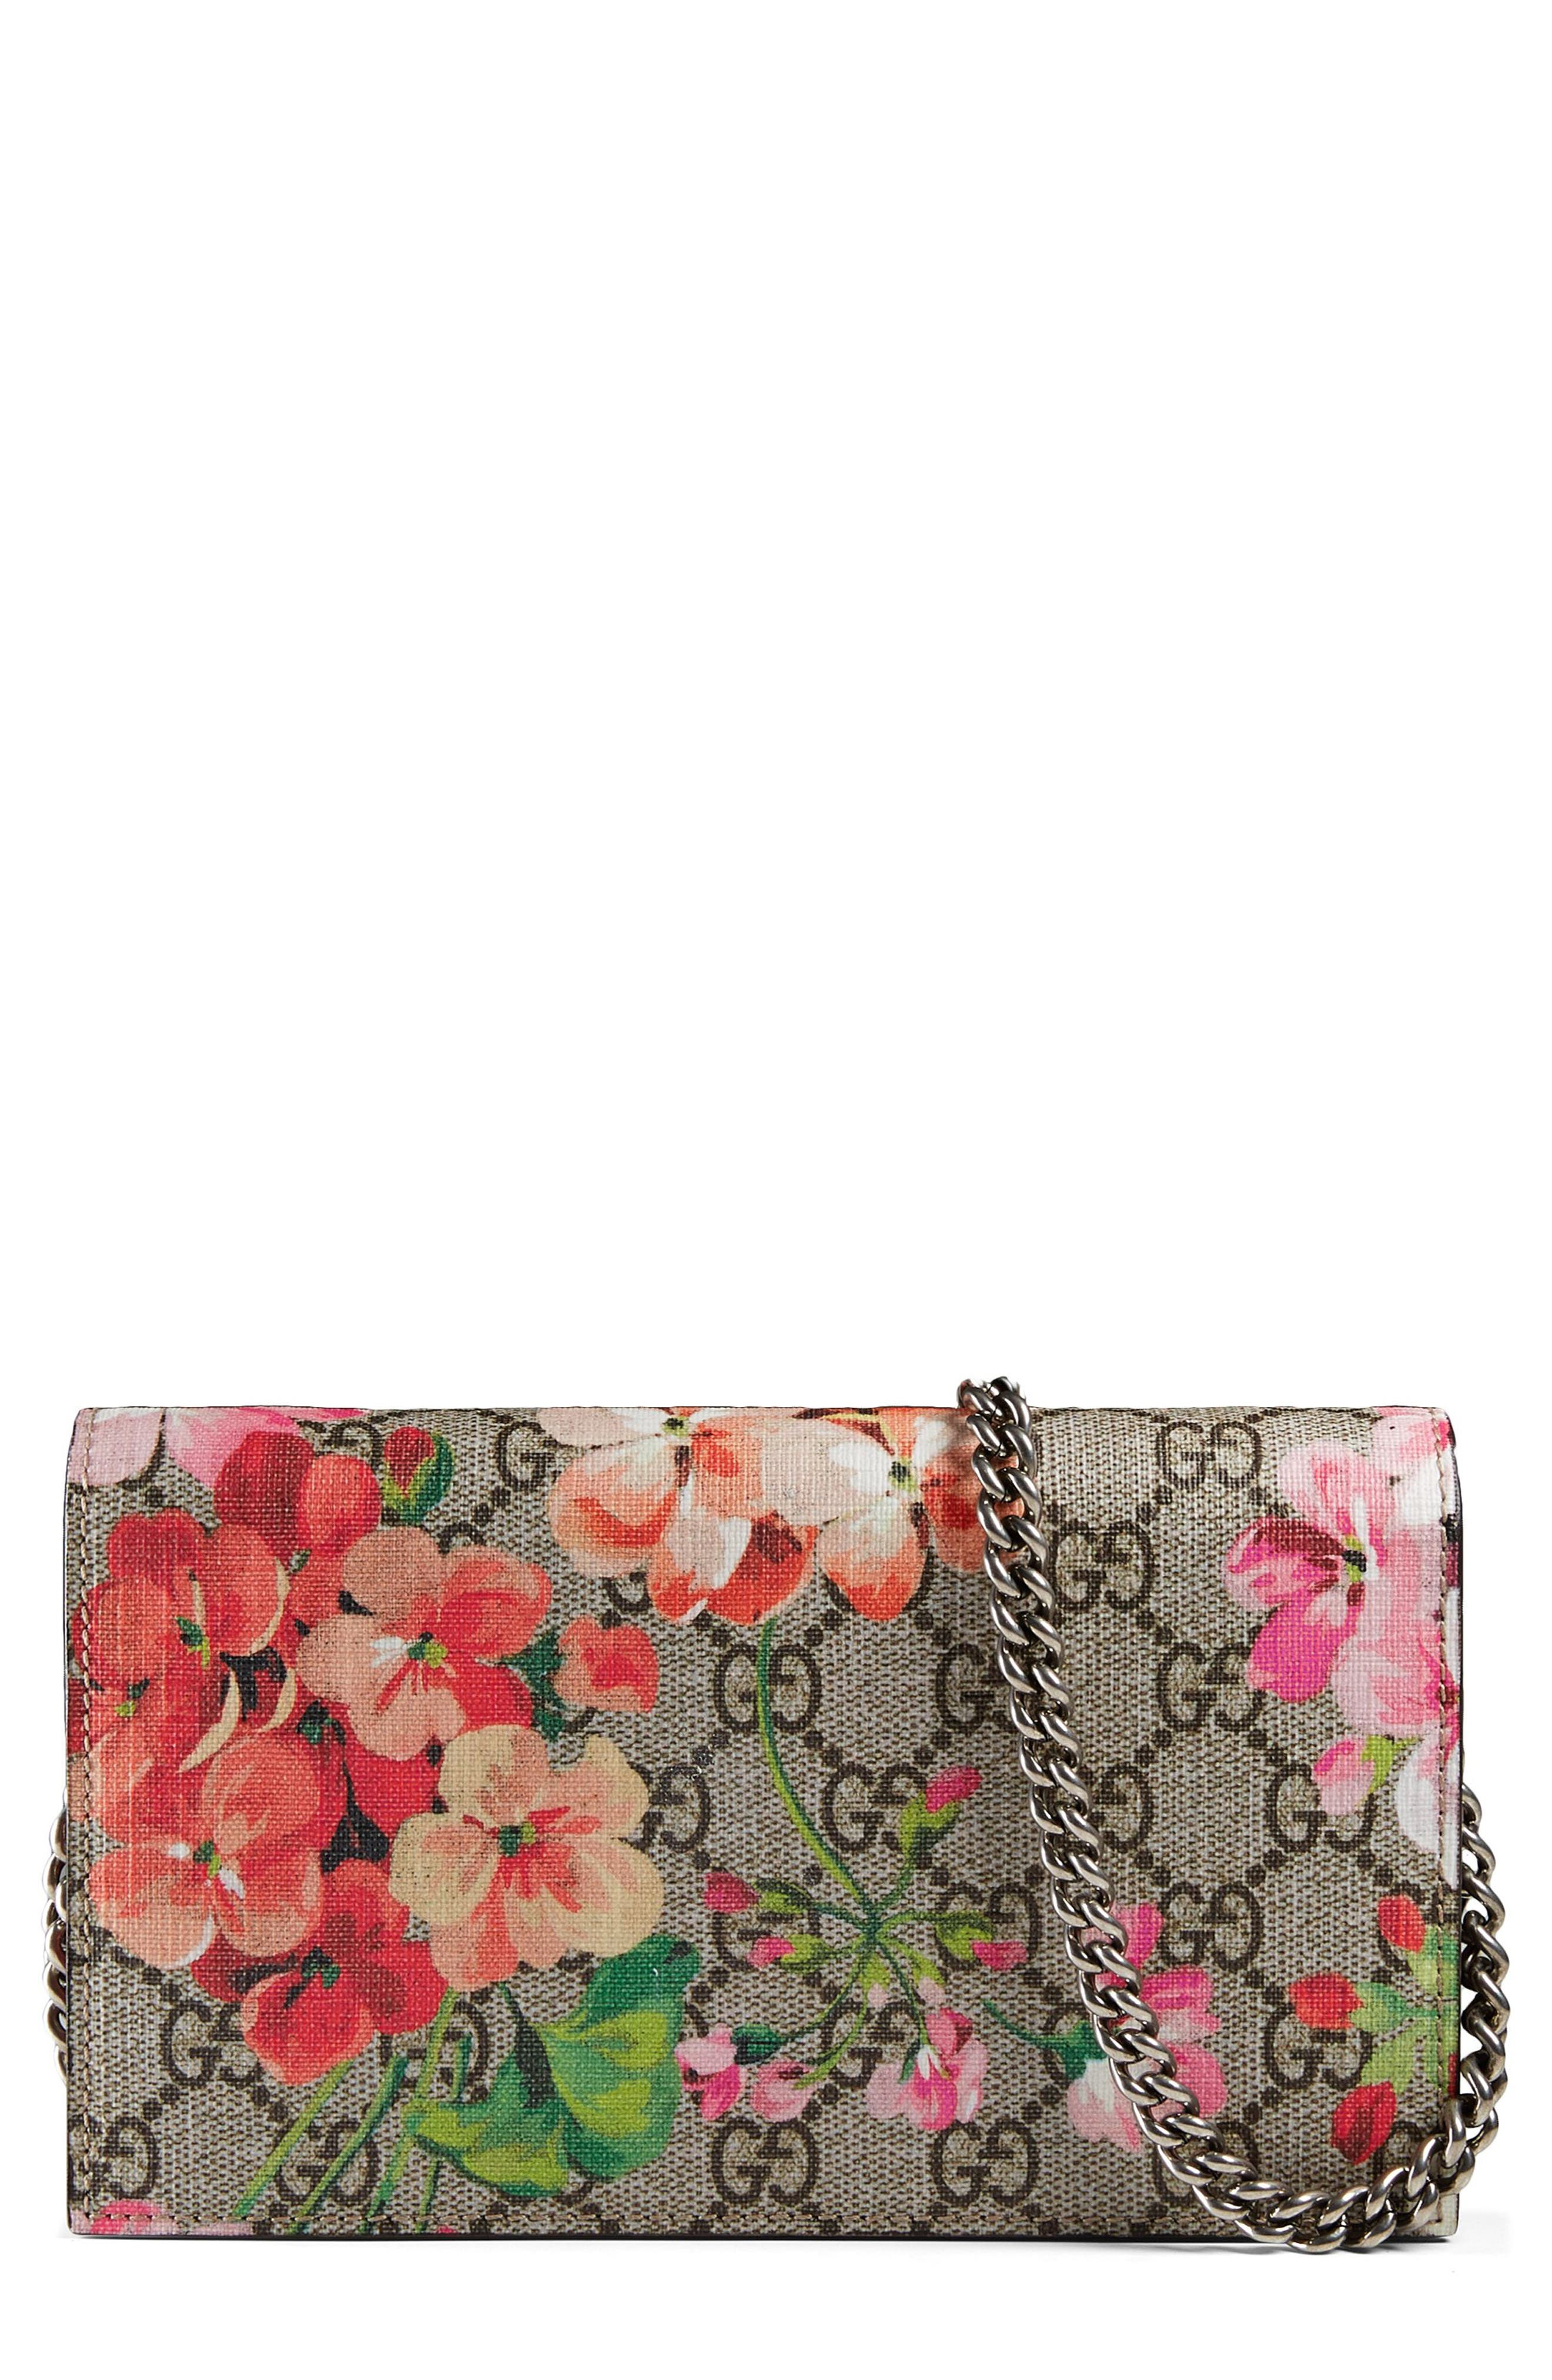 GG Blooms Supreme Canvas Wallet on a Chain,                         Main,                         color, Beige Ebony Multi/Dry Rose